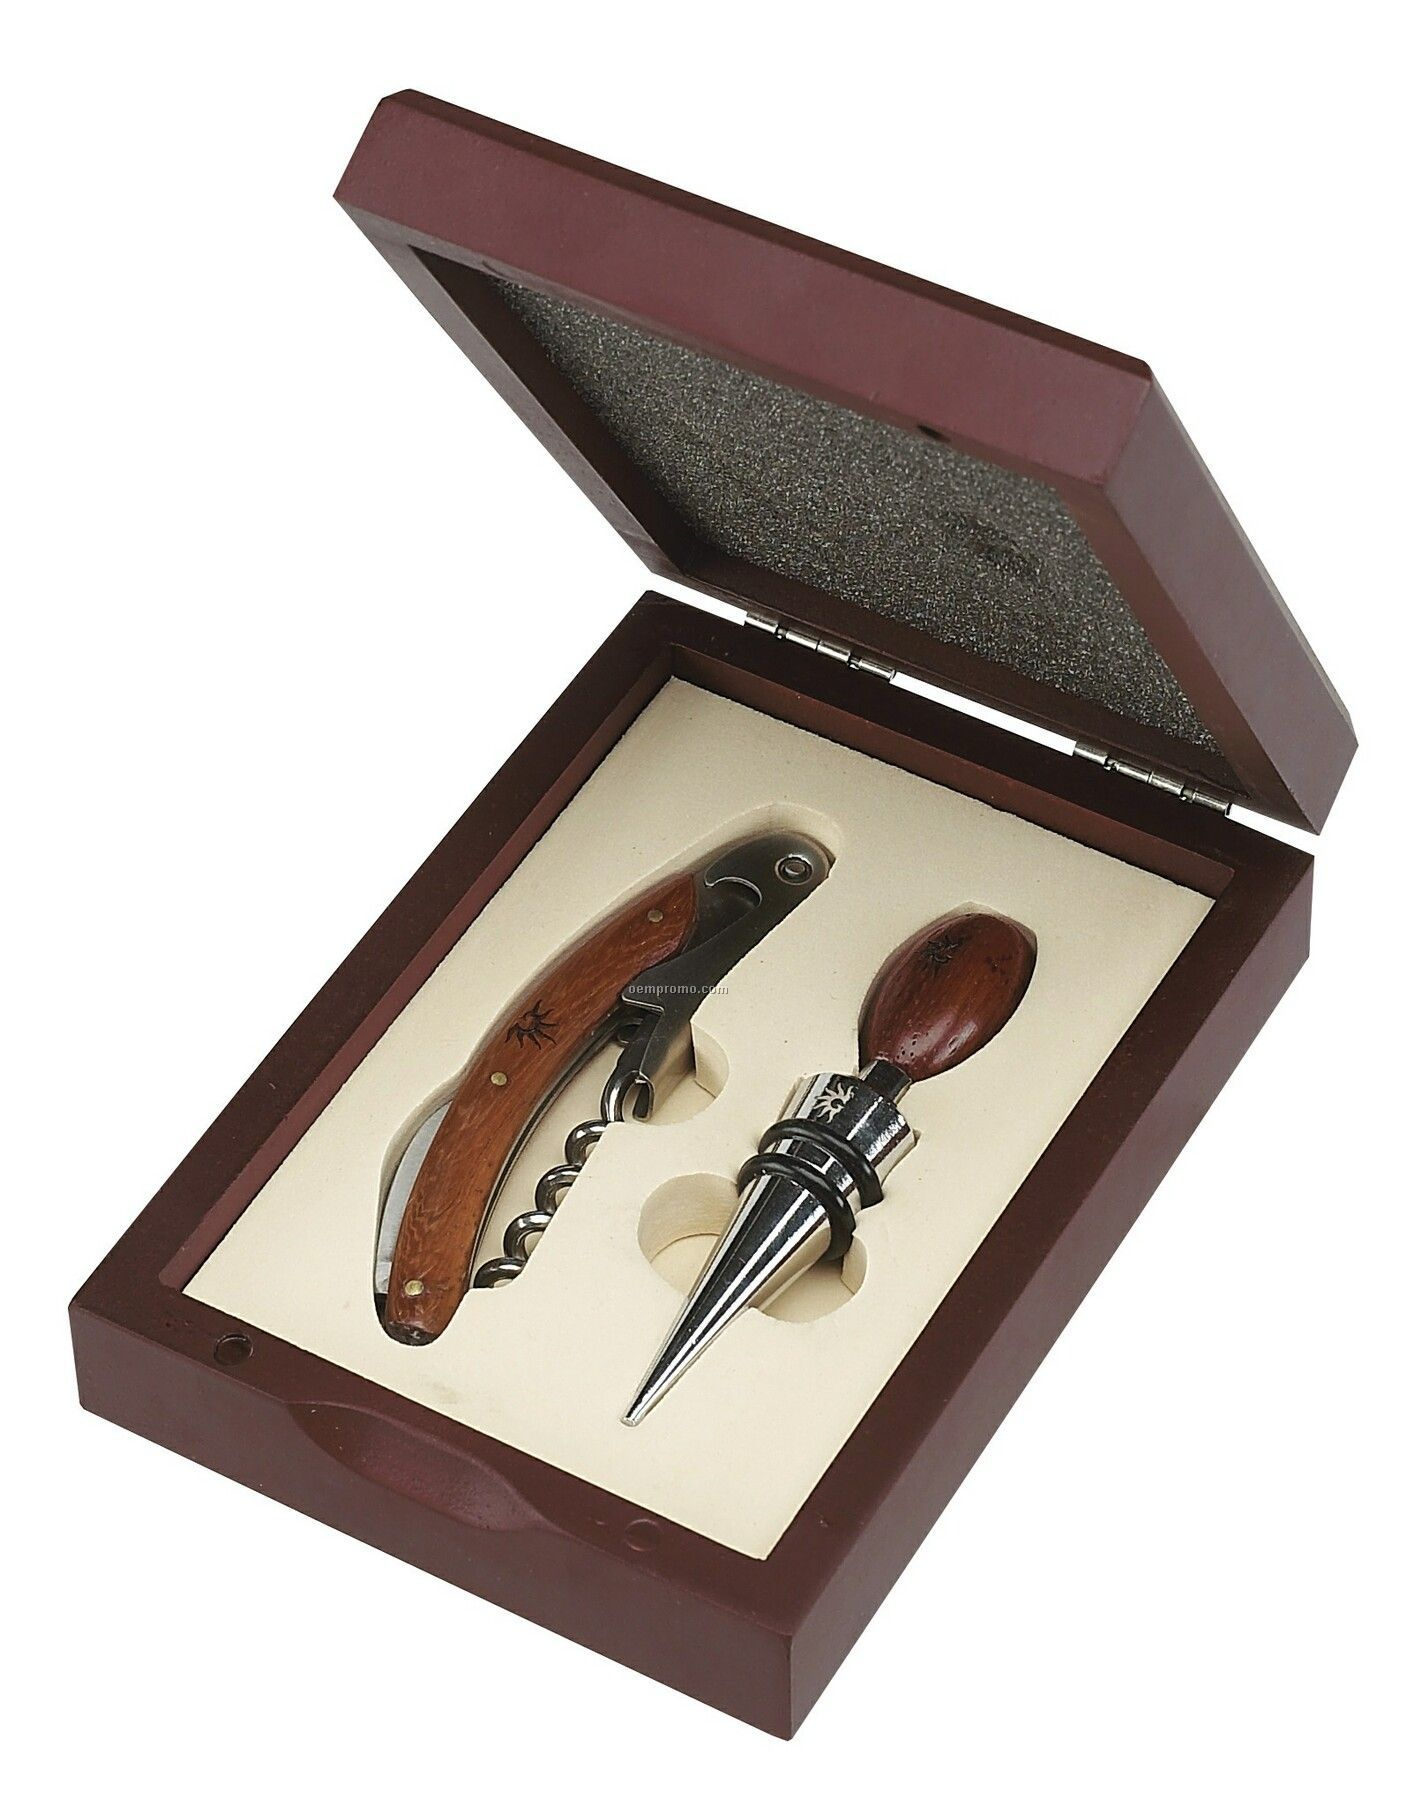 2 Piece Wine Opener Set W/ Wood Trim (Vertical Box)